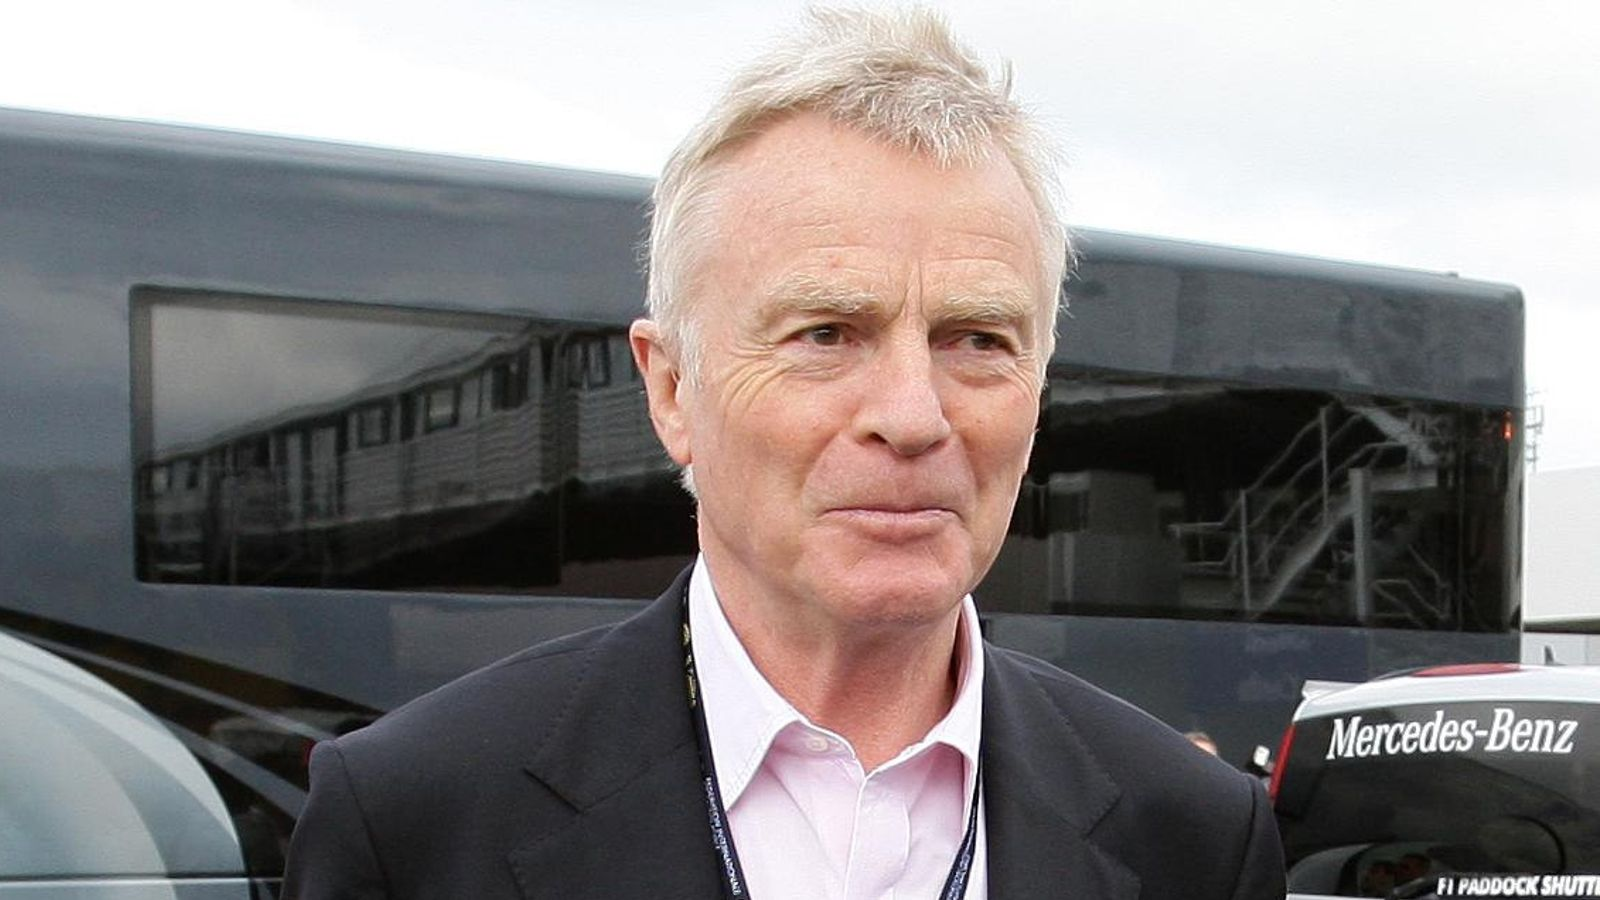 Max Mosley: Former Formula 1 Boss And Privacy Campaigner Dies Aged 81